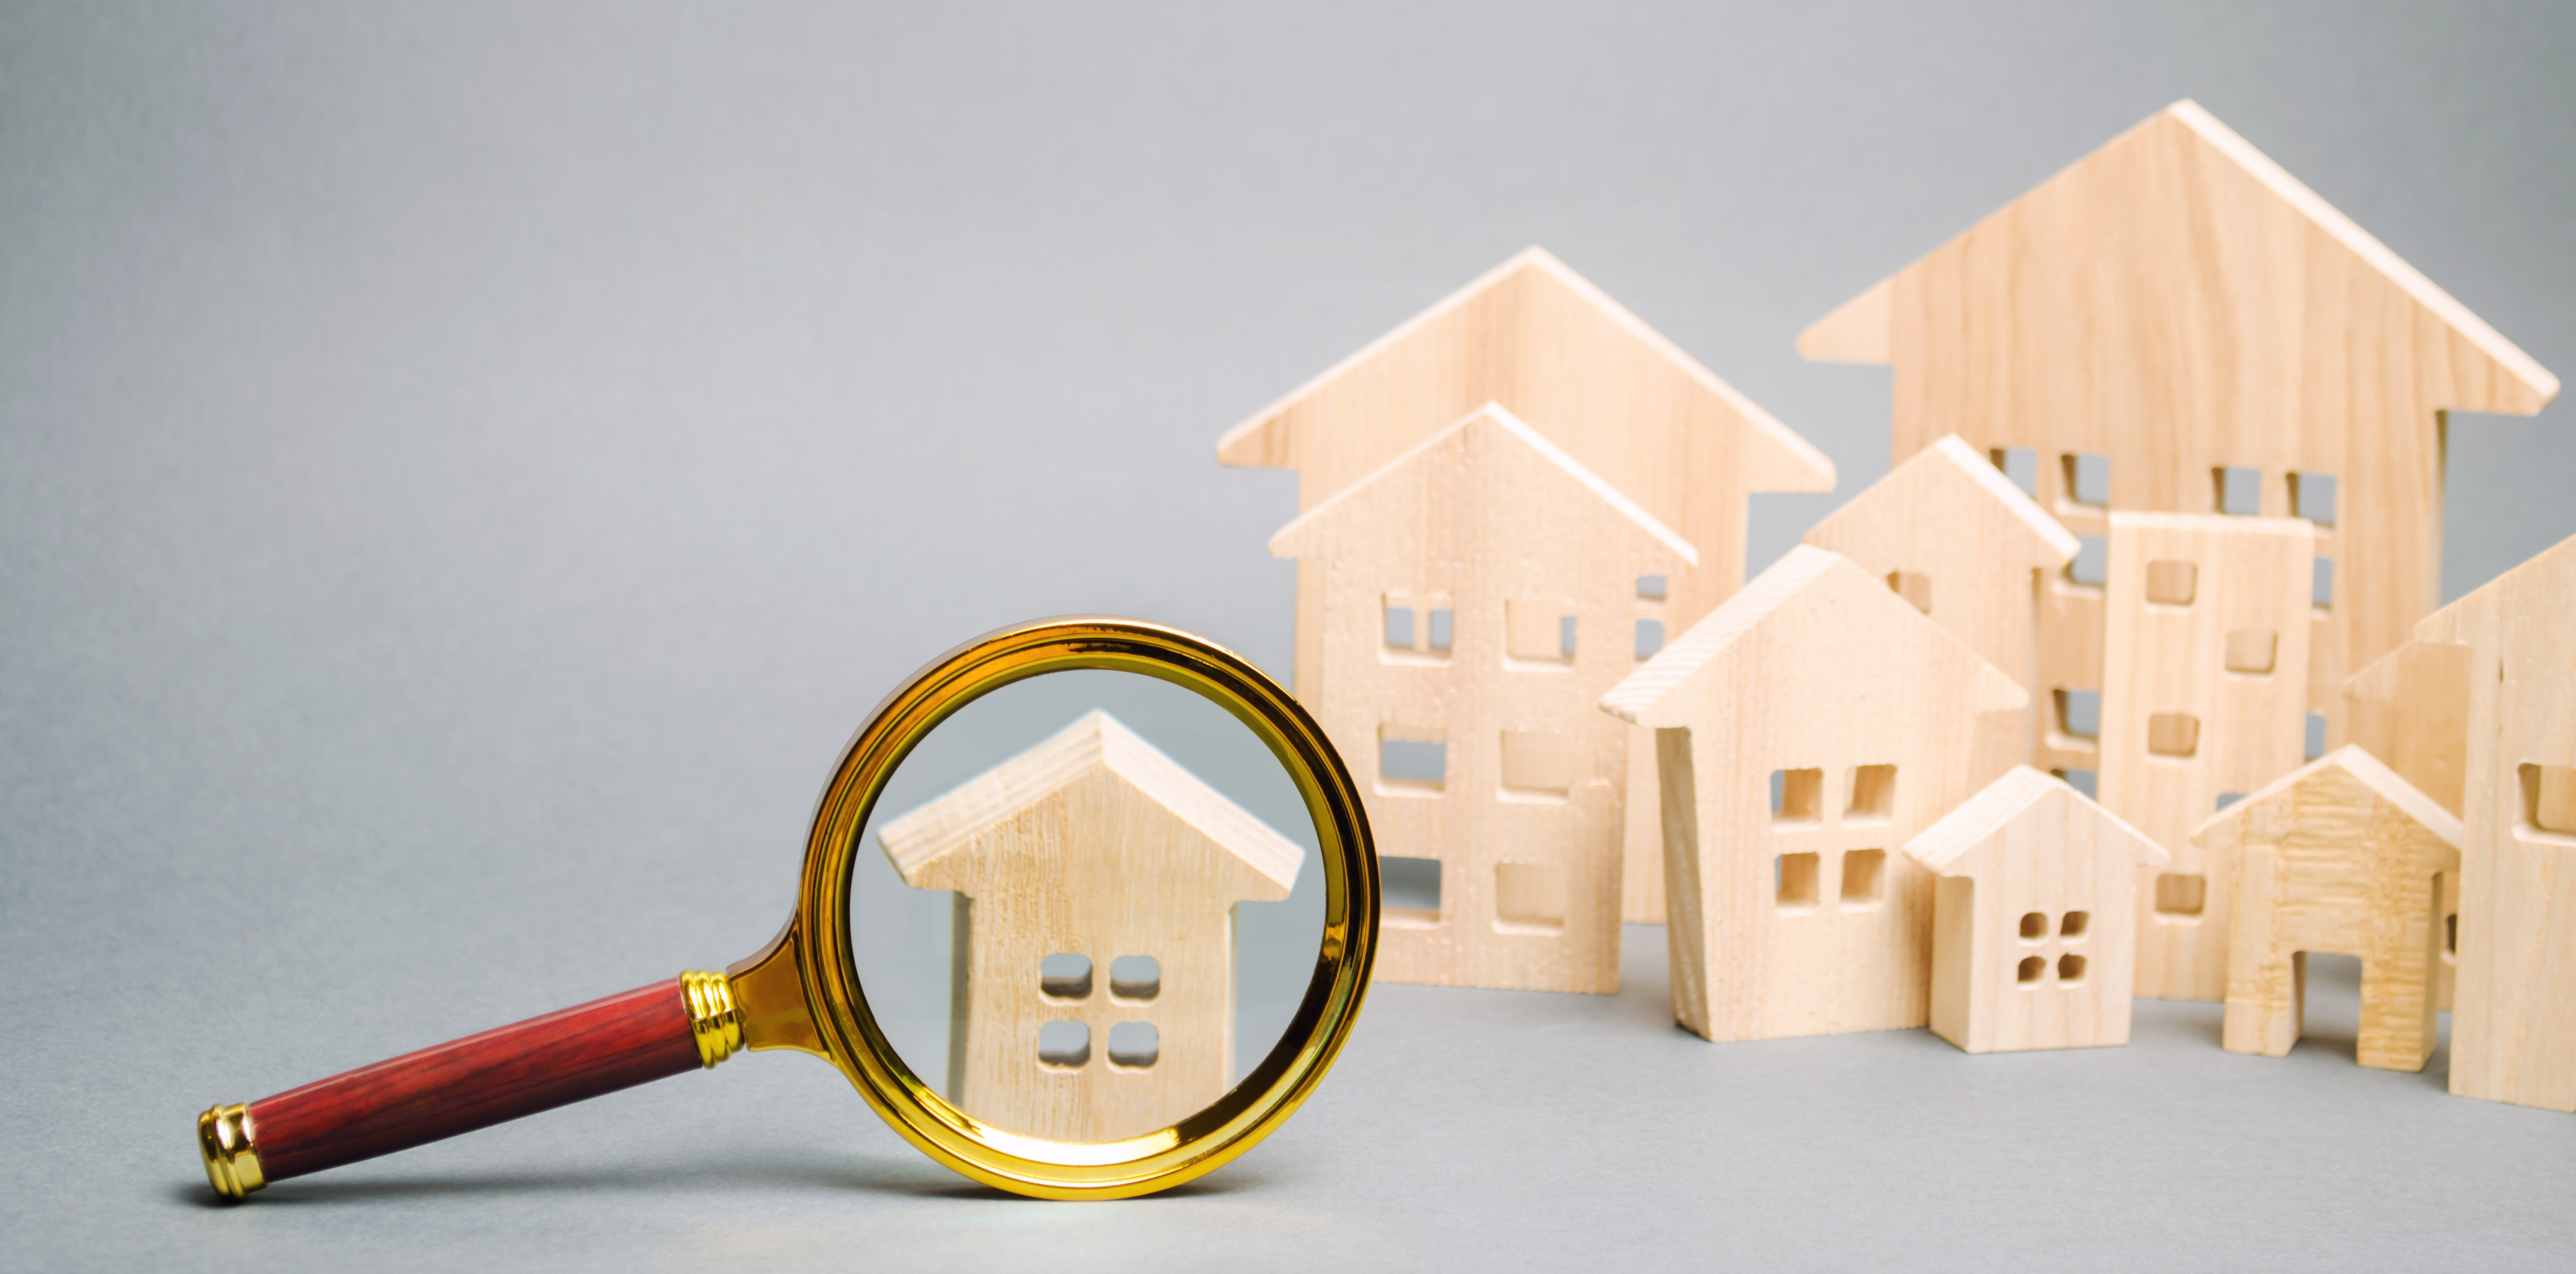 magnifying-glass-and-wooden-houses-J8JZTK8